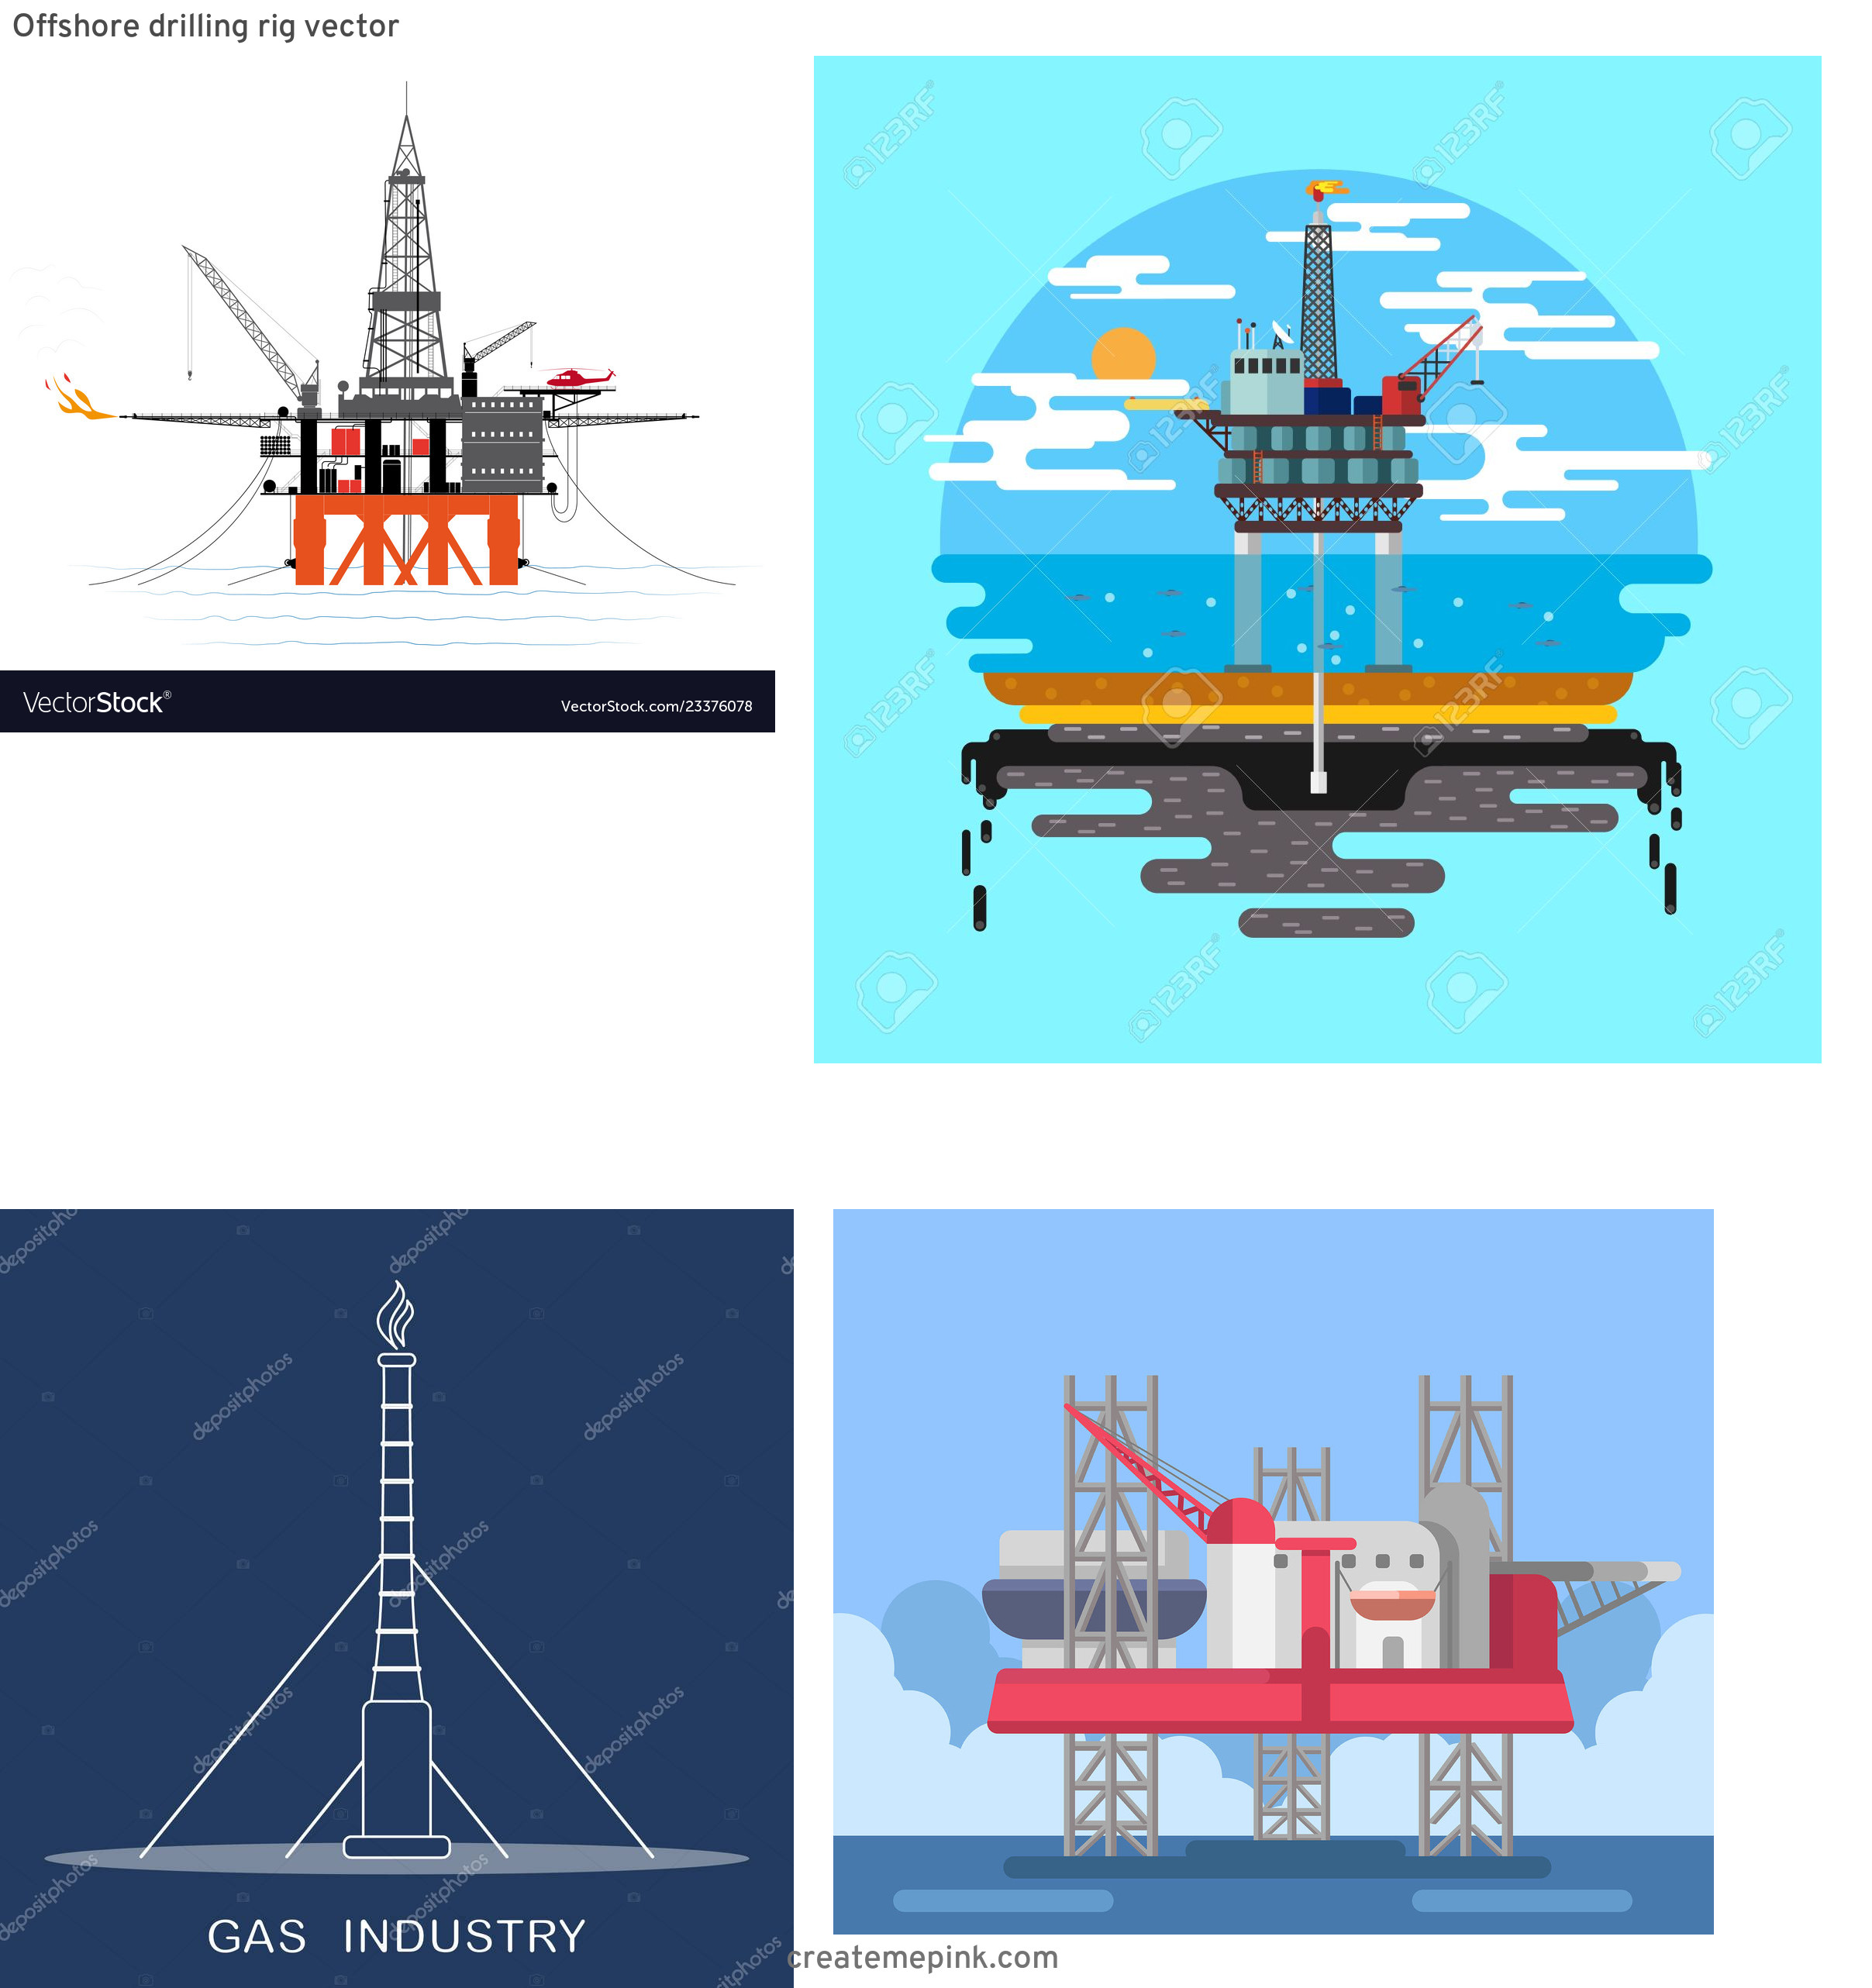 Gas Rig Vector: Offshore Drilling Rig Vector